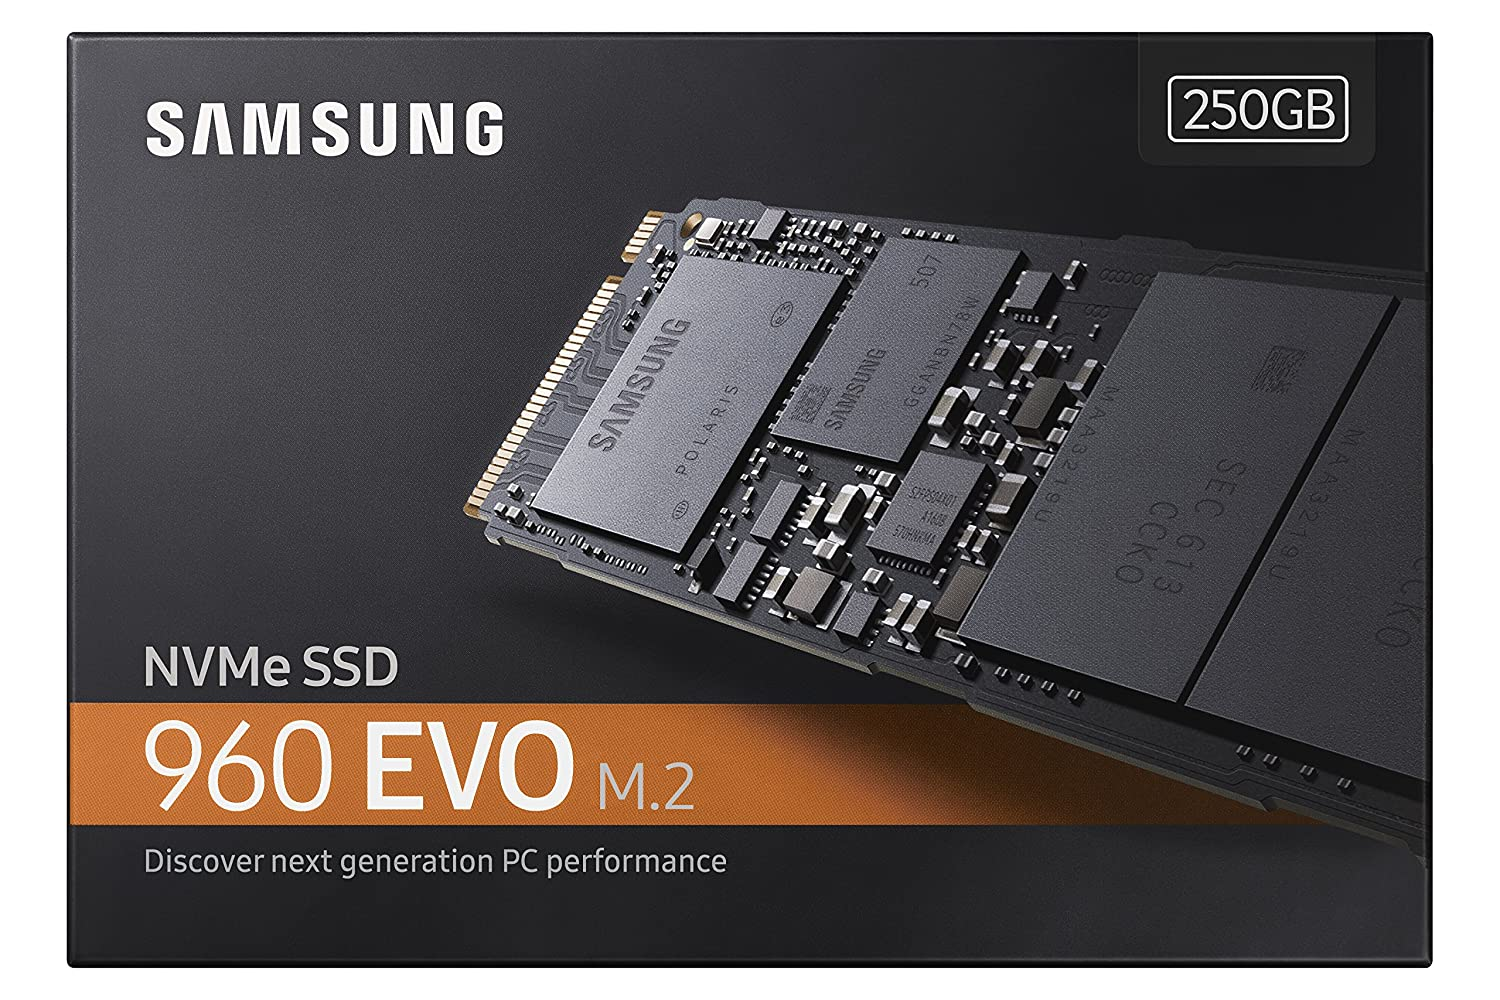 Samsung 960 EVO NVMe Series 250GB M.2 PCI-Express 3.0 x4 Solid State Drive, Retail (V-NAND)